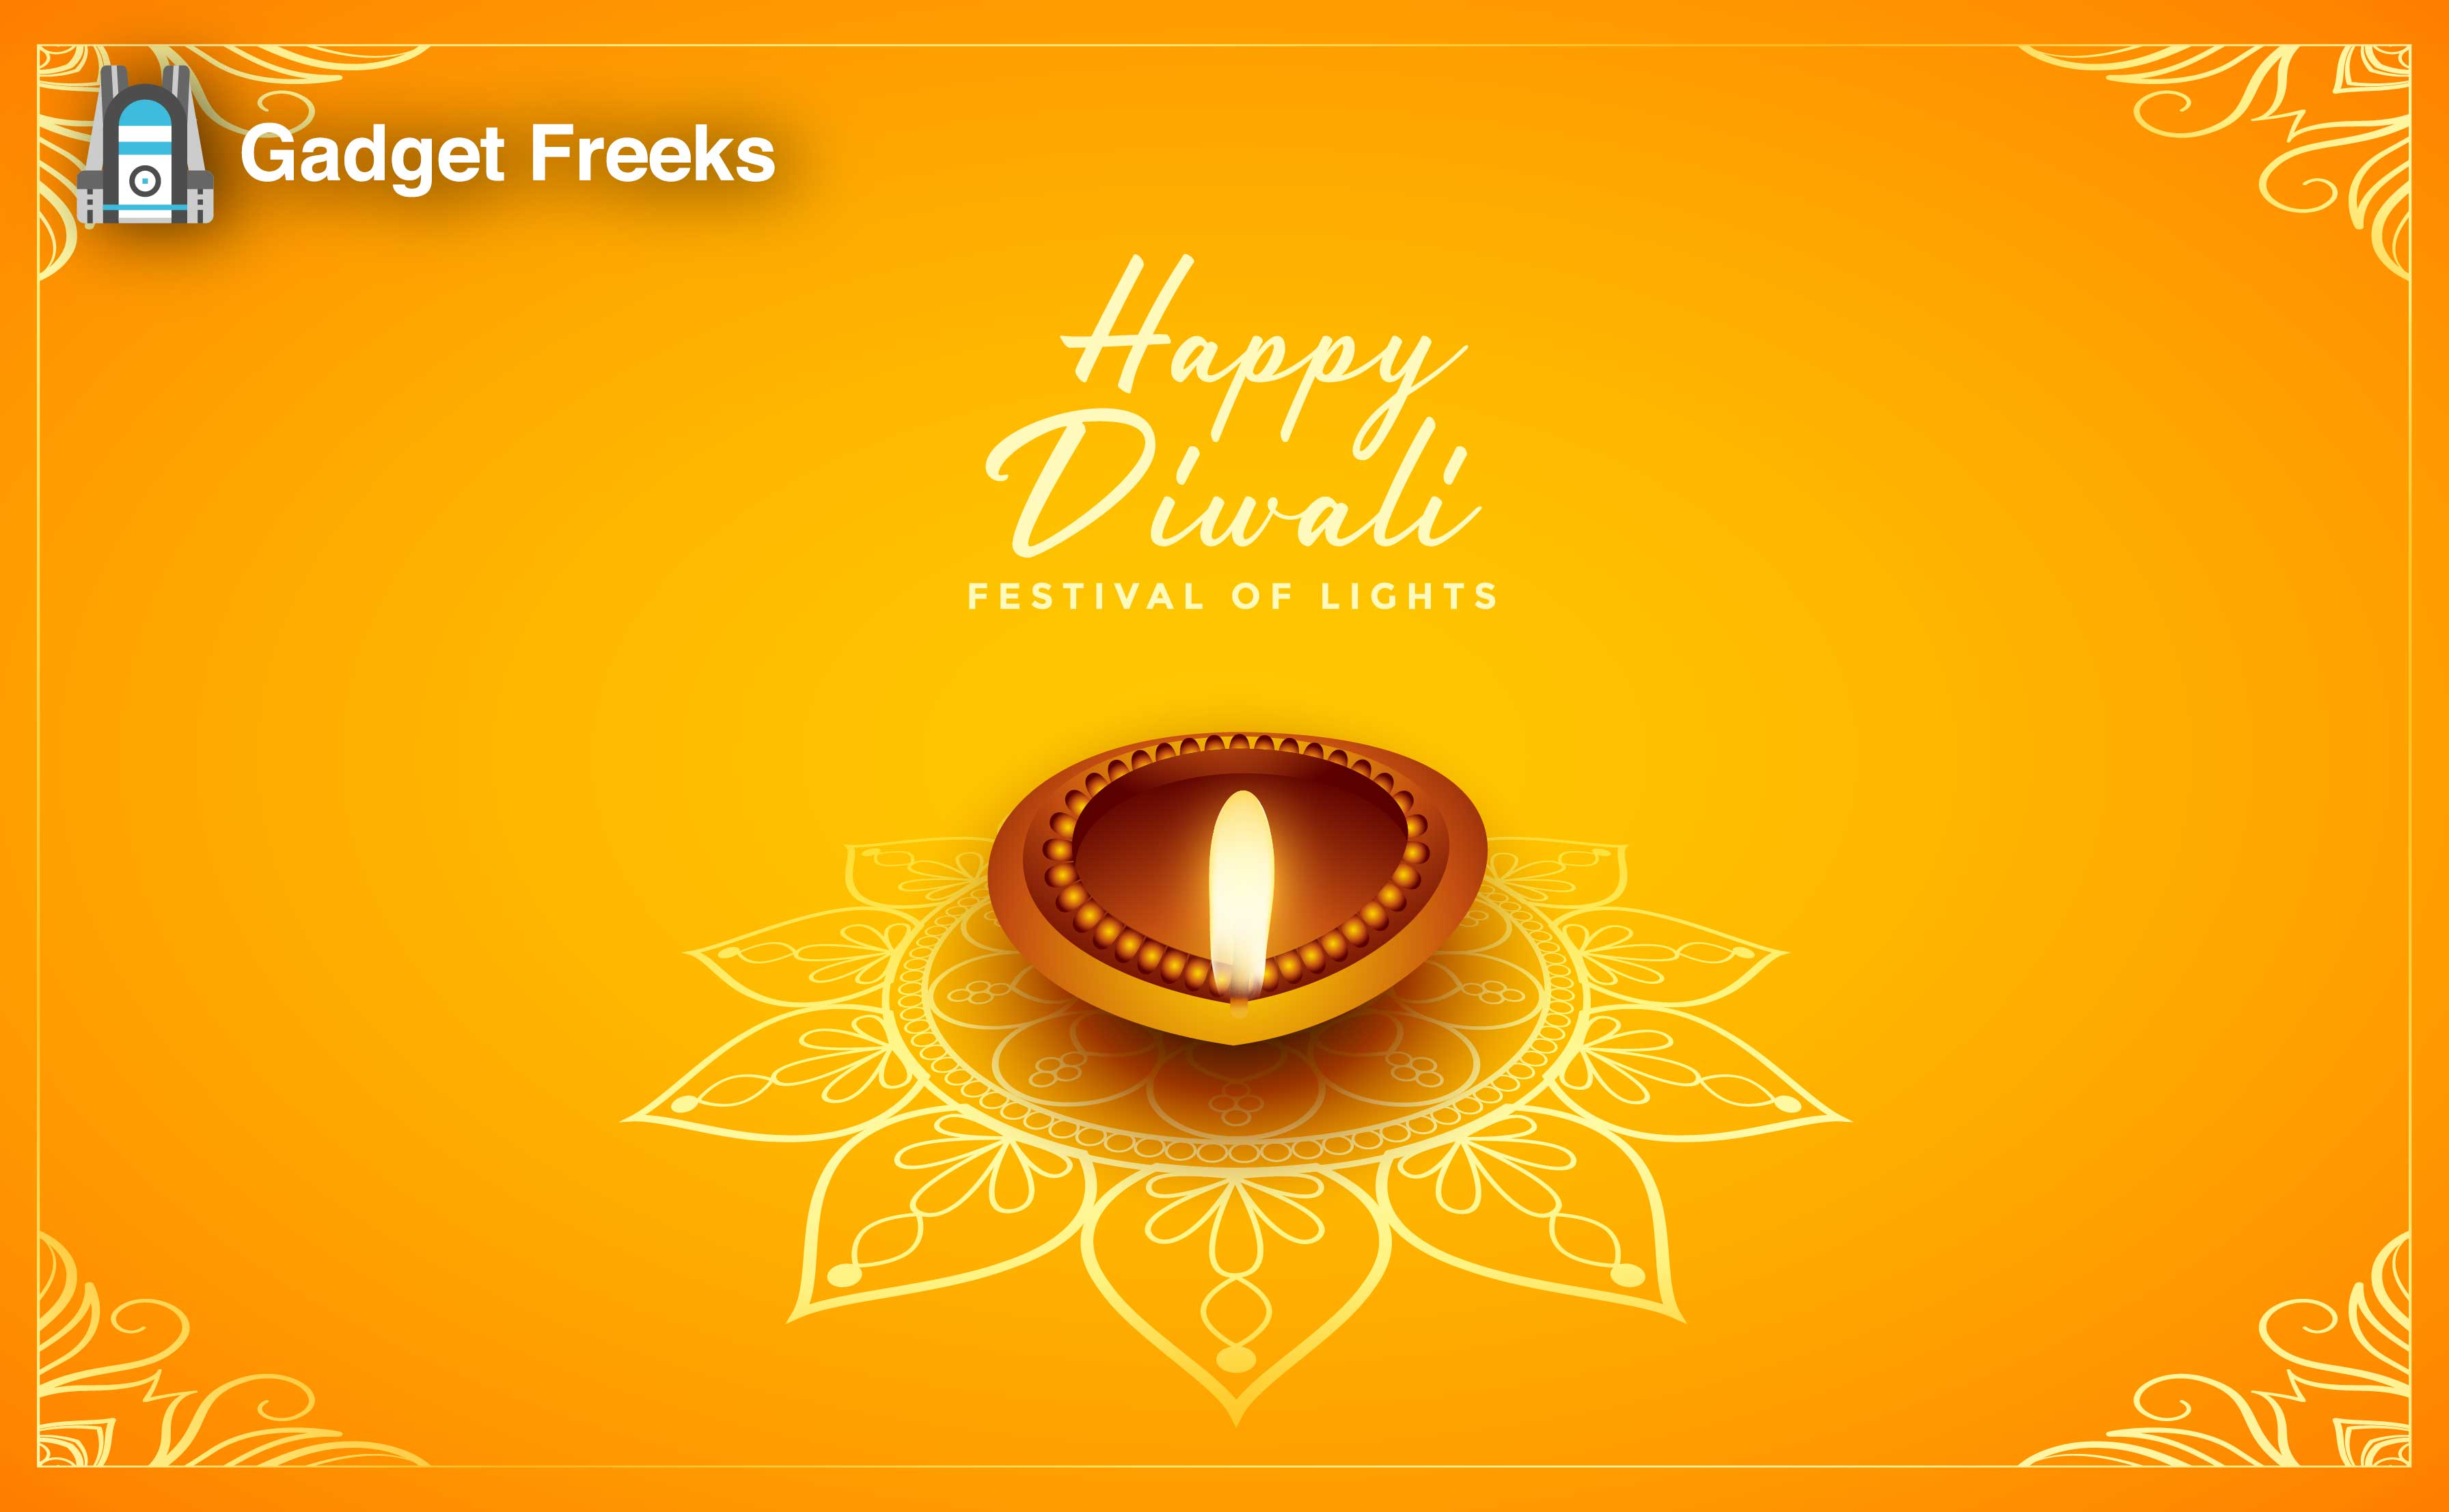 Diwali Images for Whatsapp